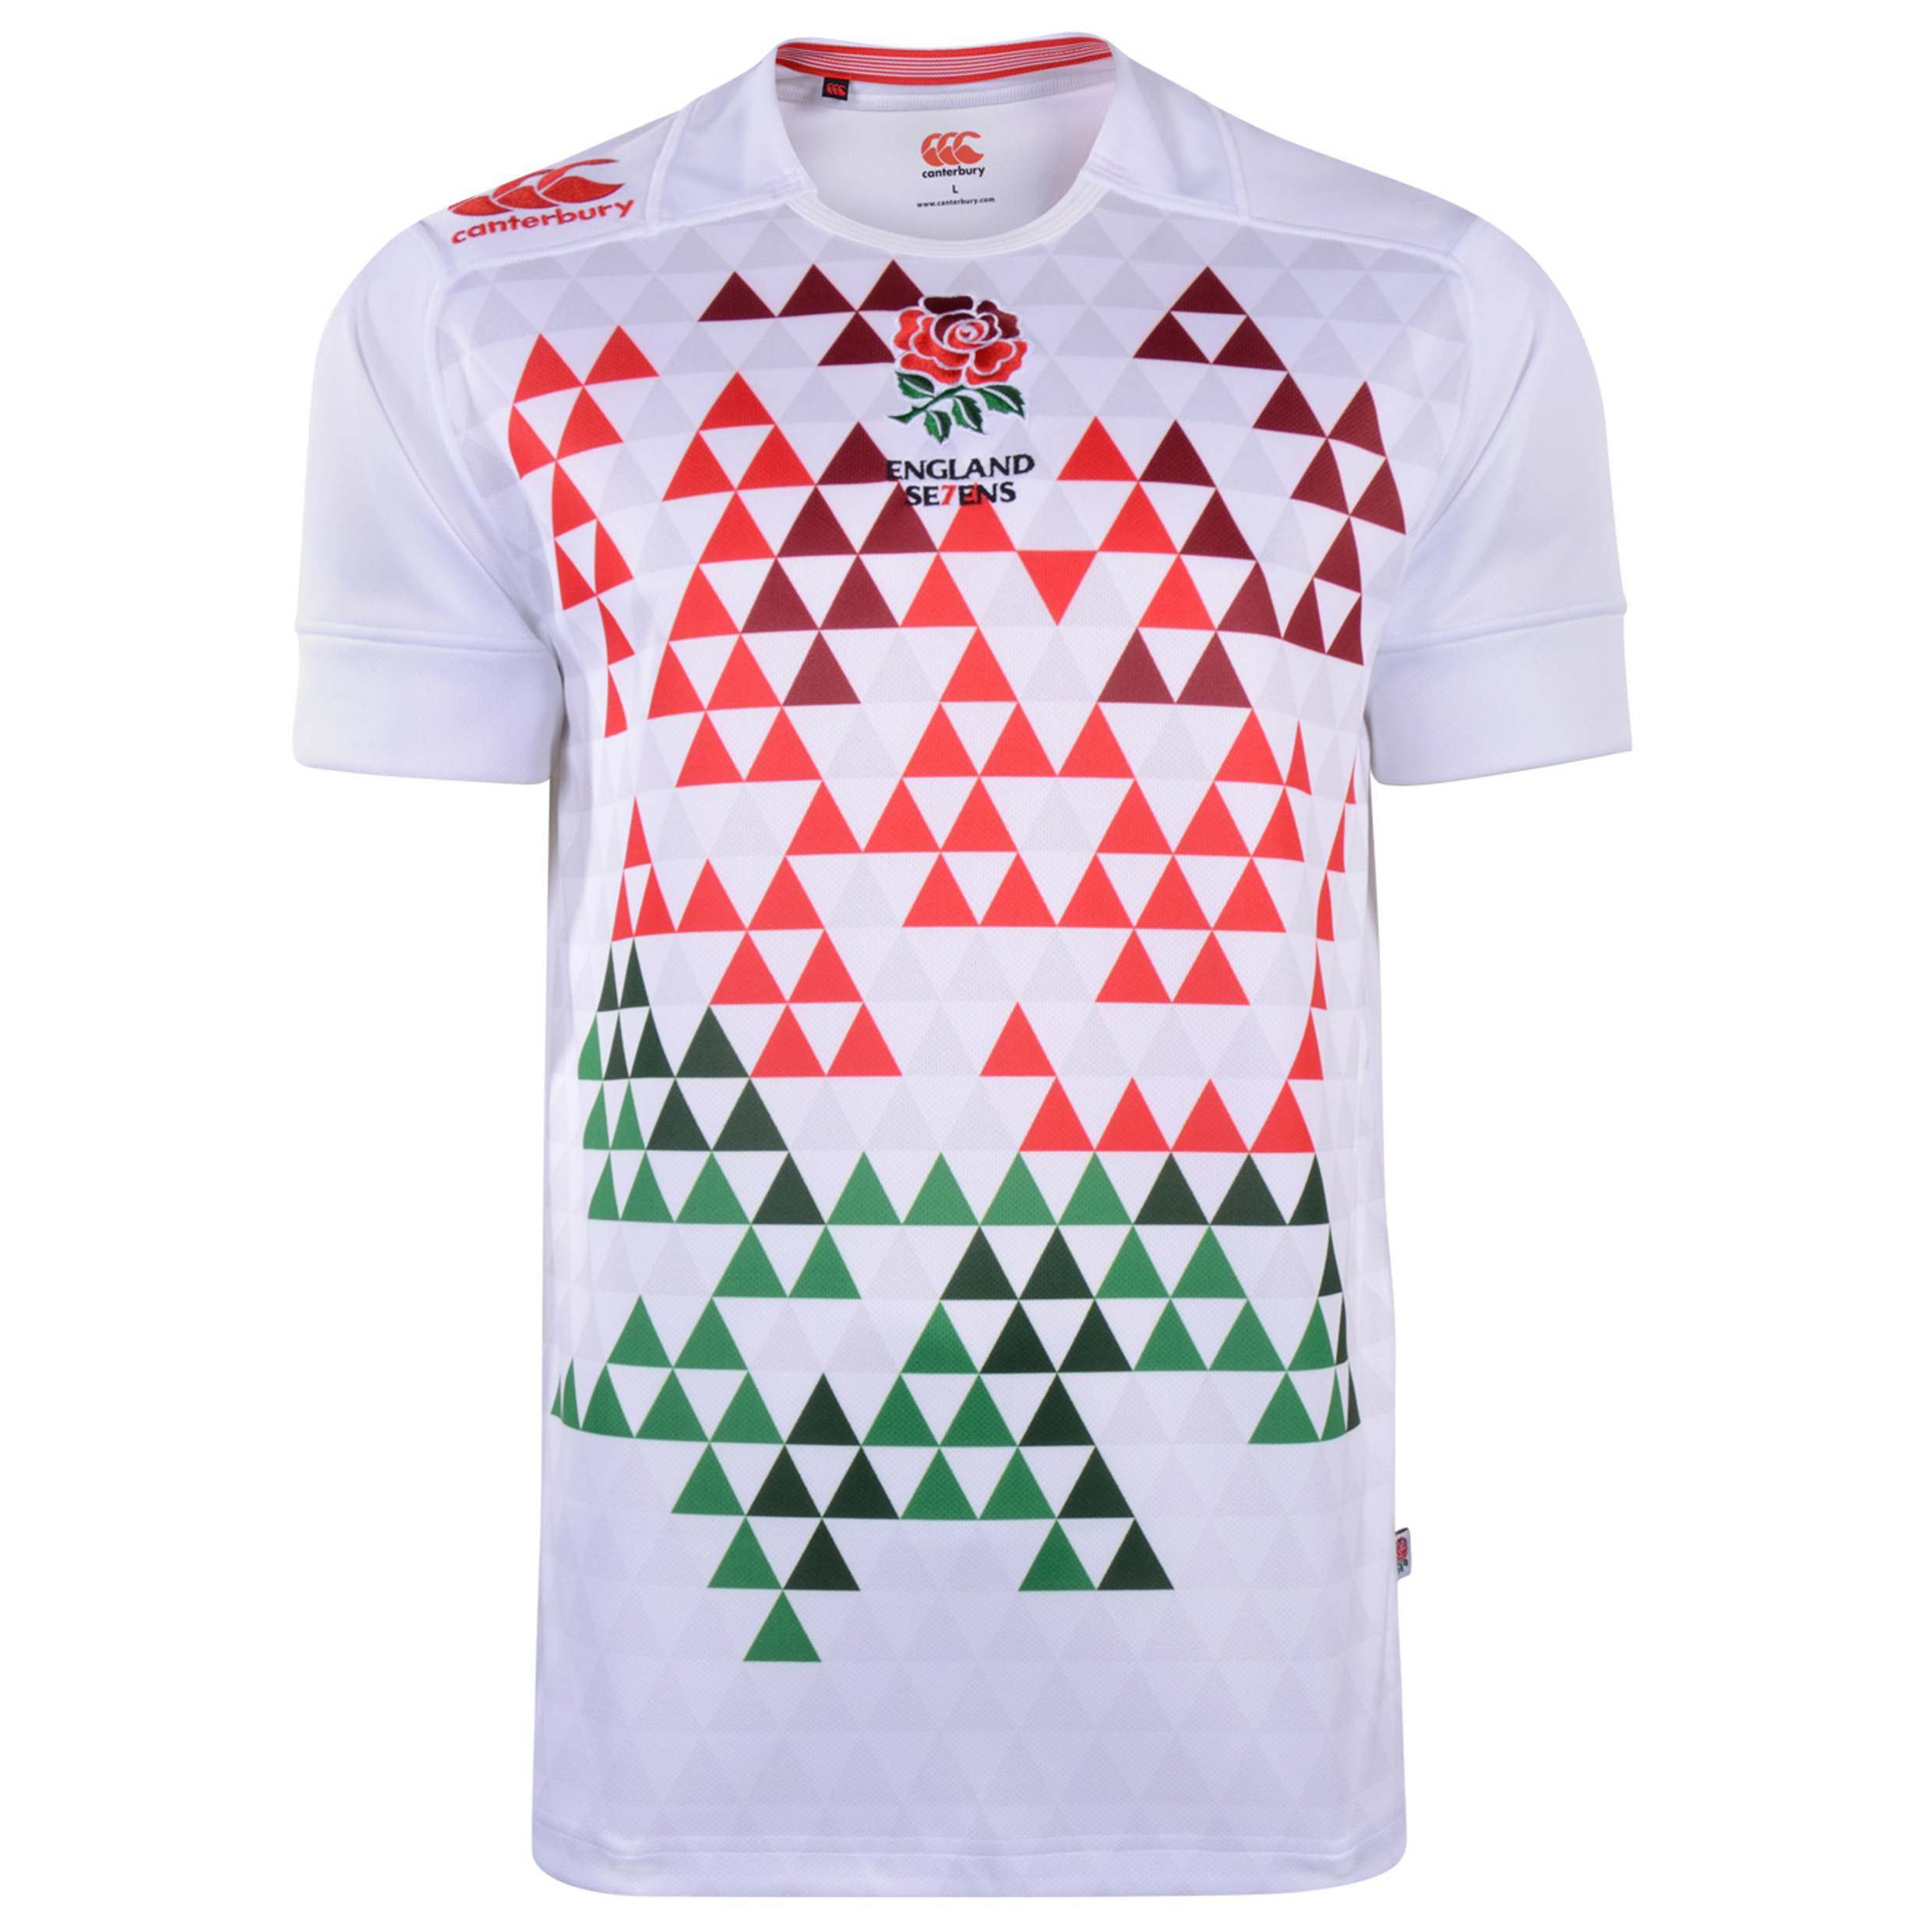 England Home Sevens Rugby Pro Shirt 2013-Bright White-Kids